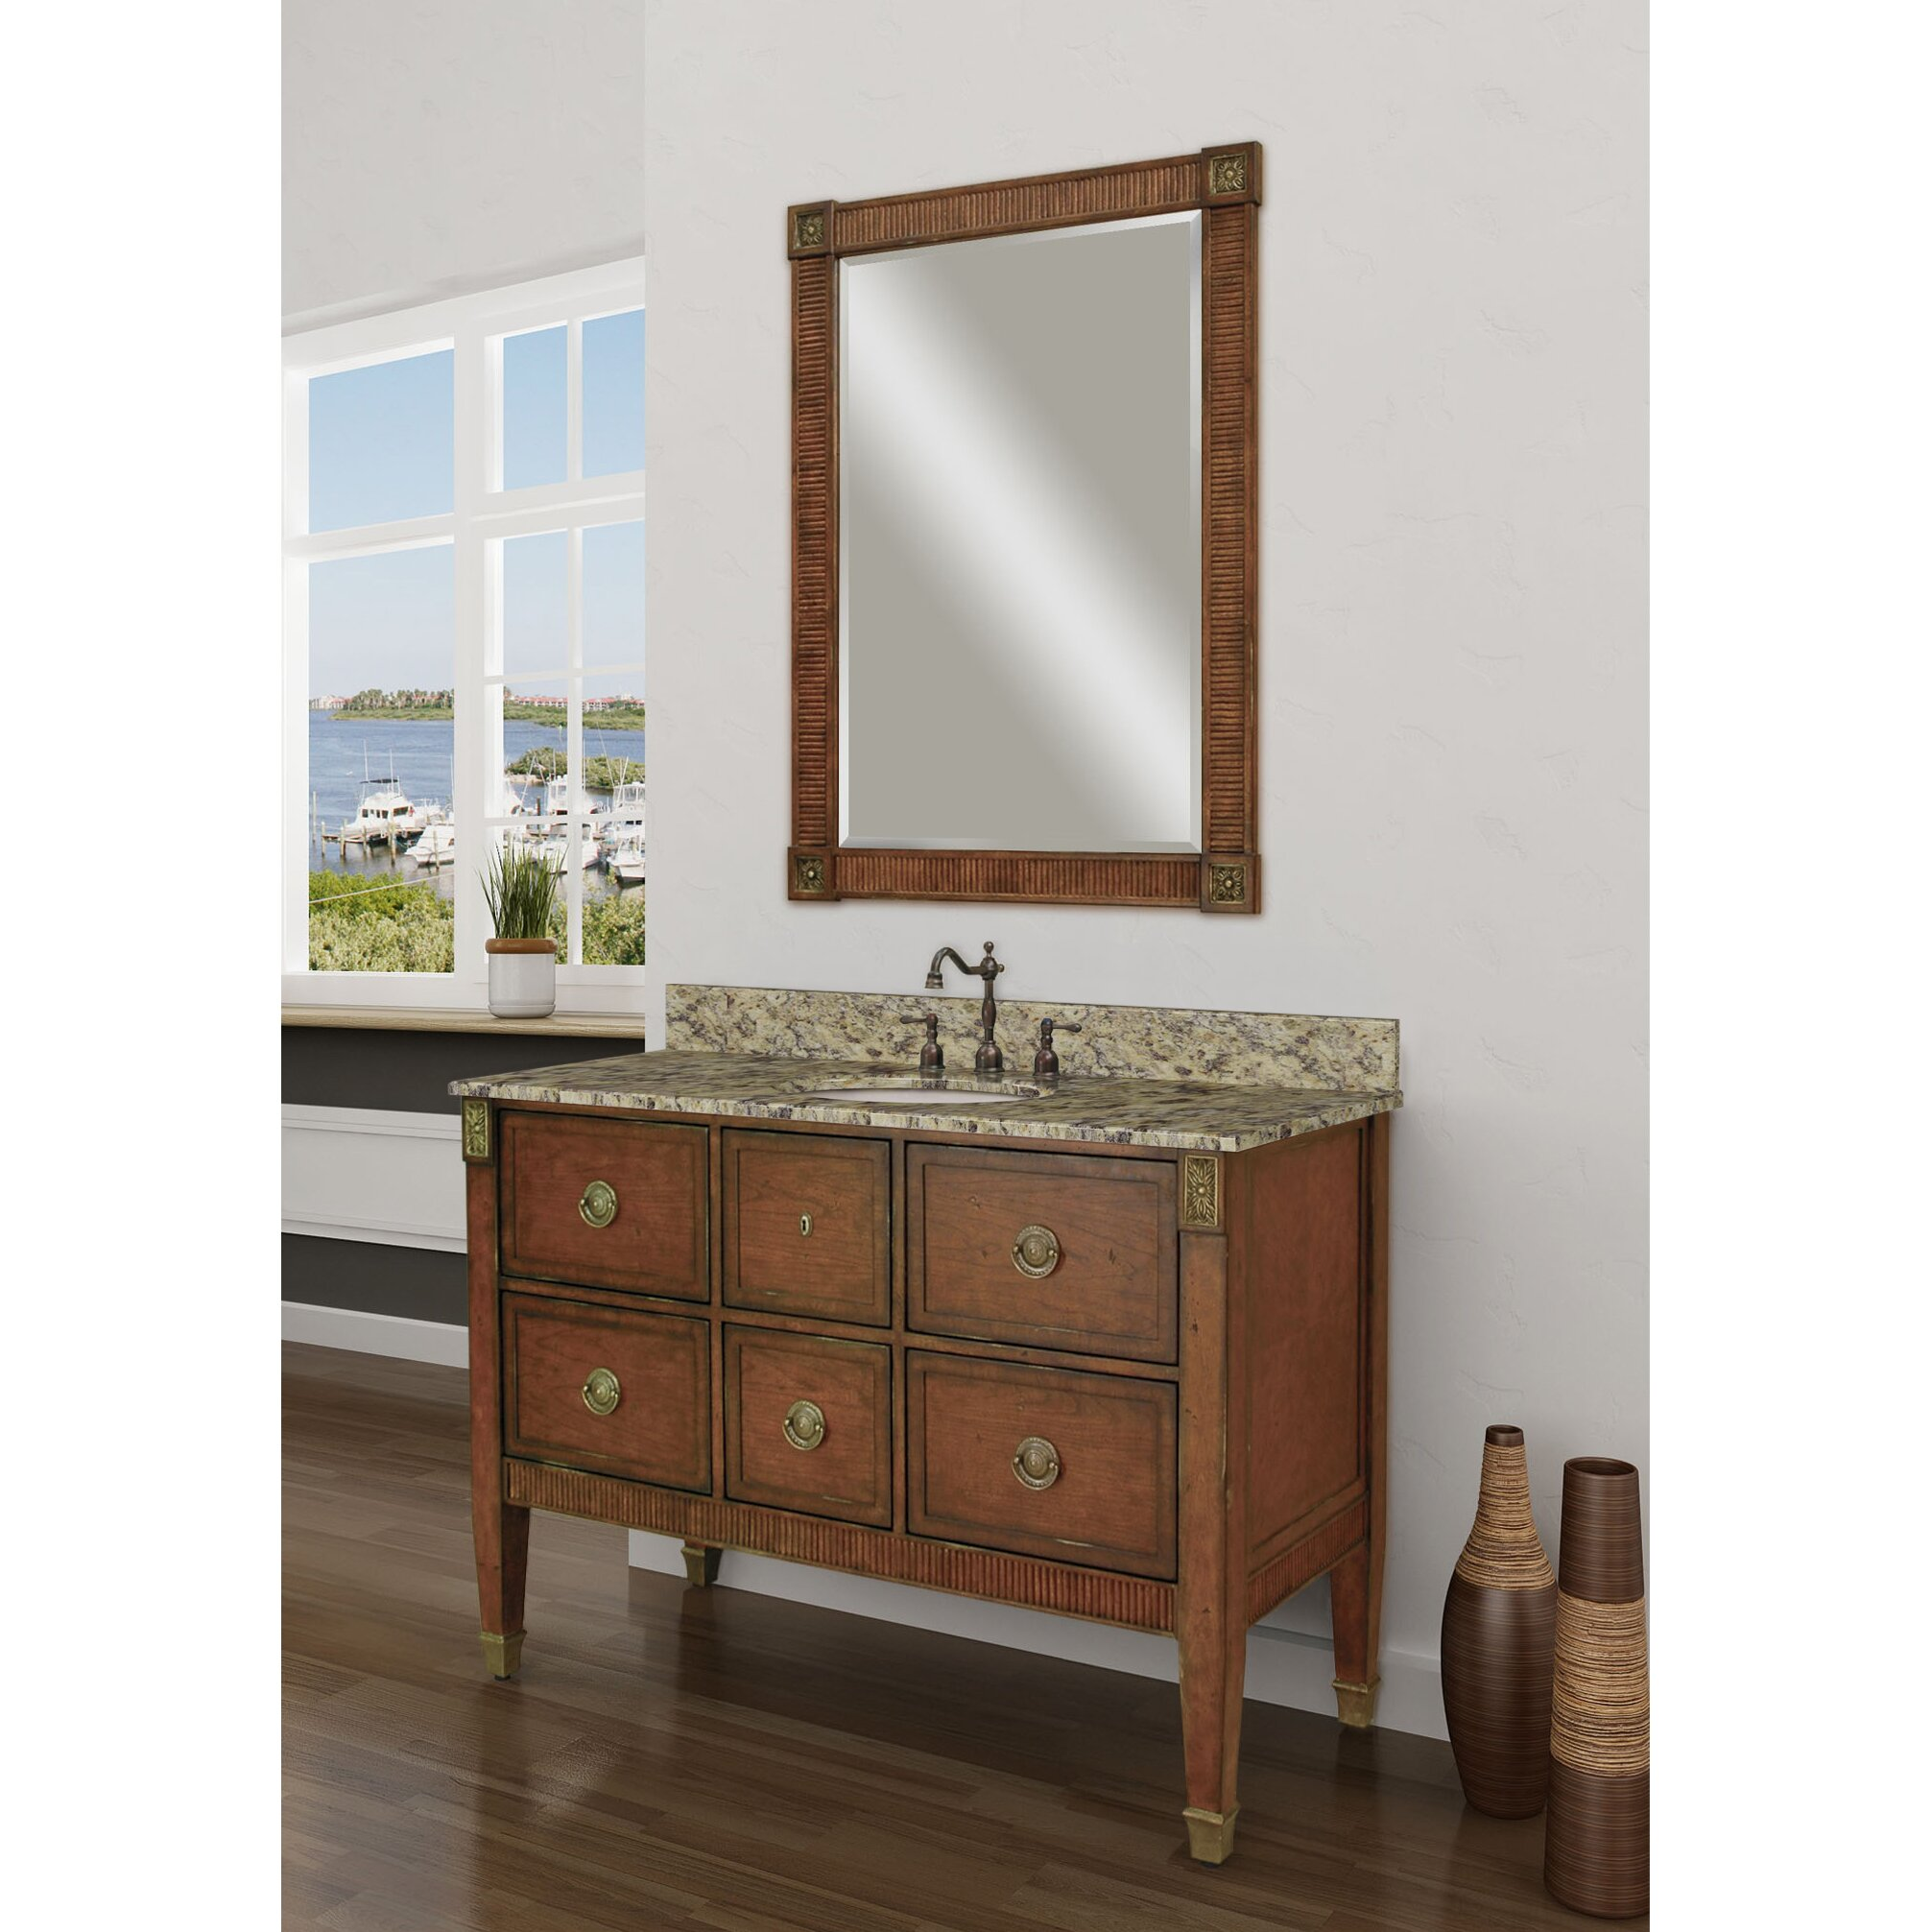 Sagehill granite 49 single bathroom vanity top wayfair for Granite bathroom vanity